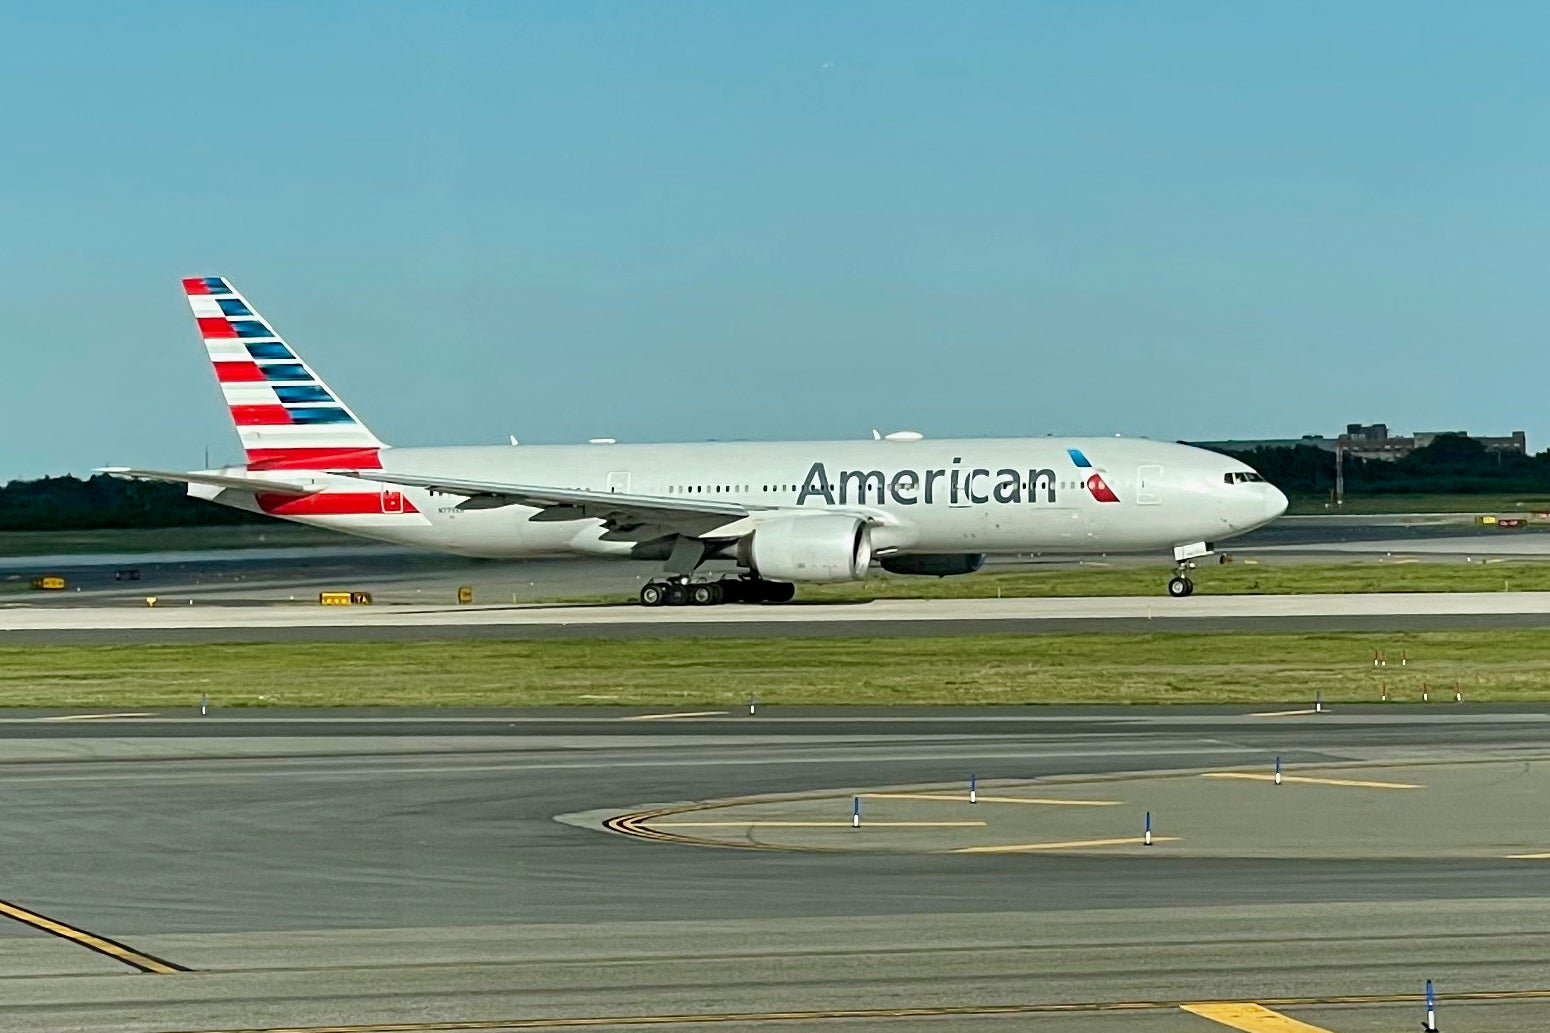 Miles from American's AAdvantage 40th anniversary game finally posting to accounts � The Points Guy